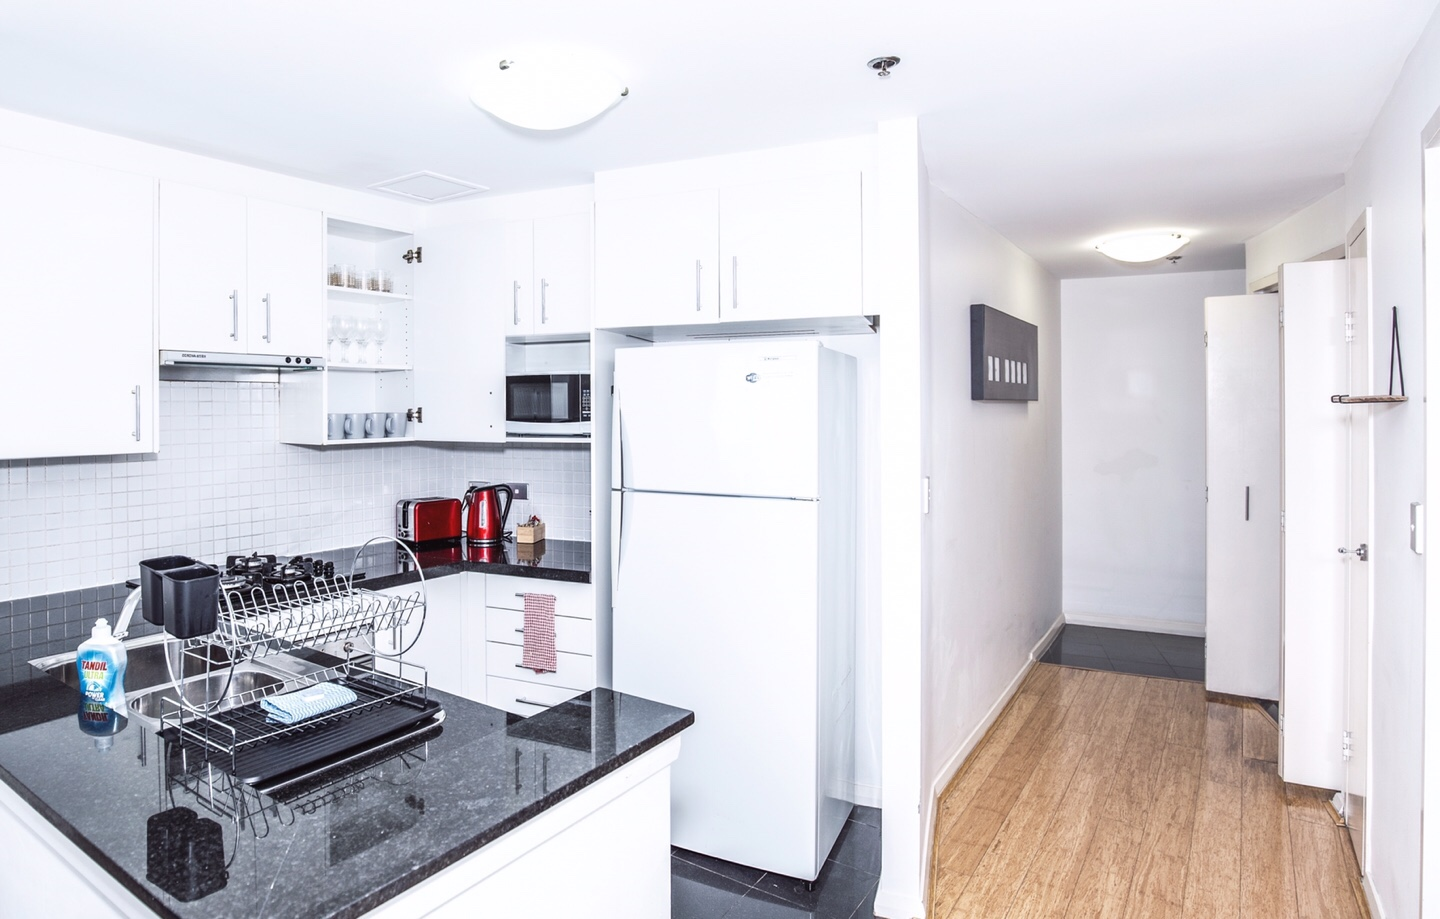 2 Bedroom Apartment with Seaview DD on Kent Kitchen 3(1).jpeg